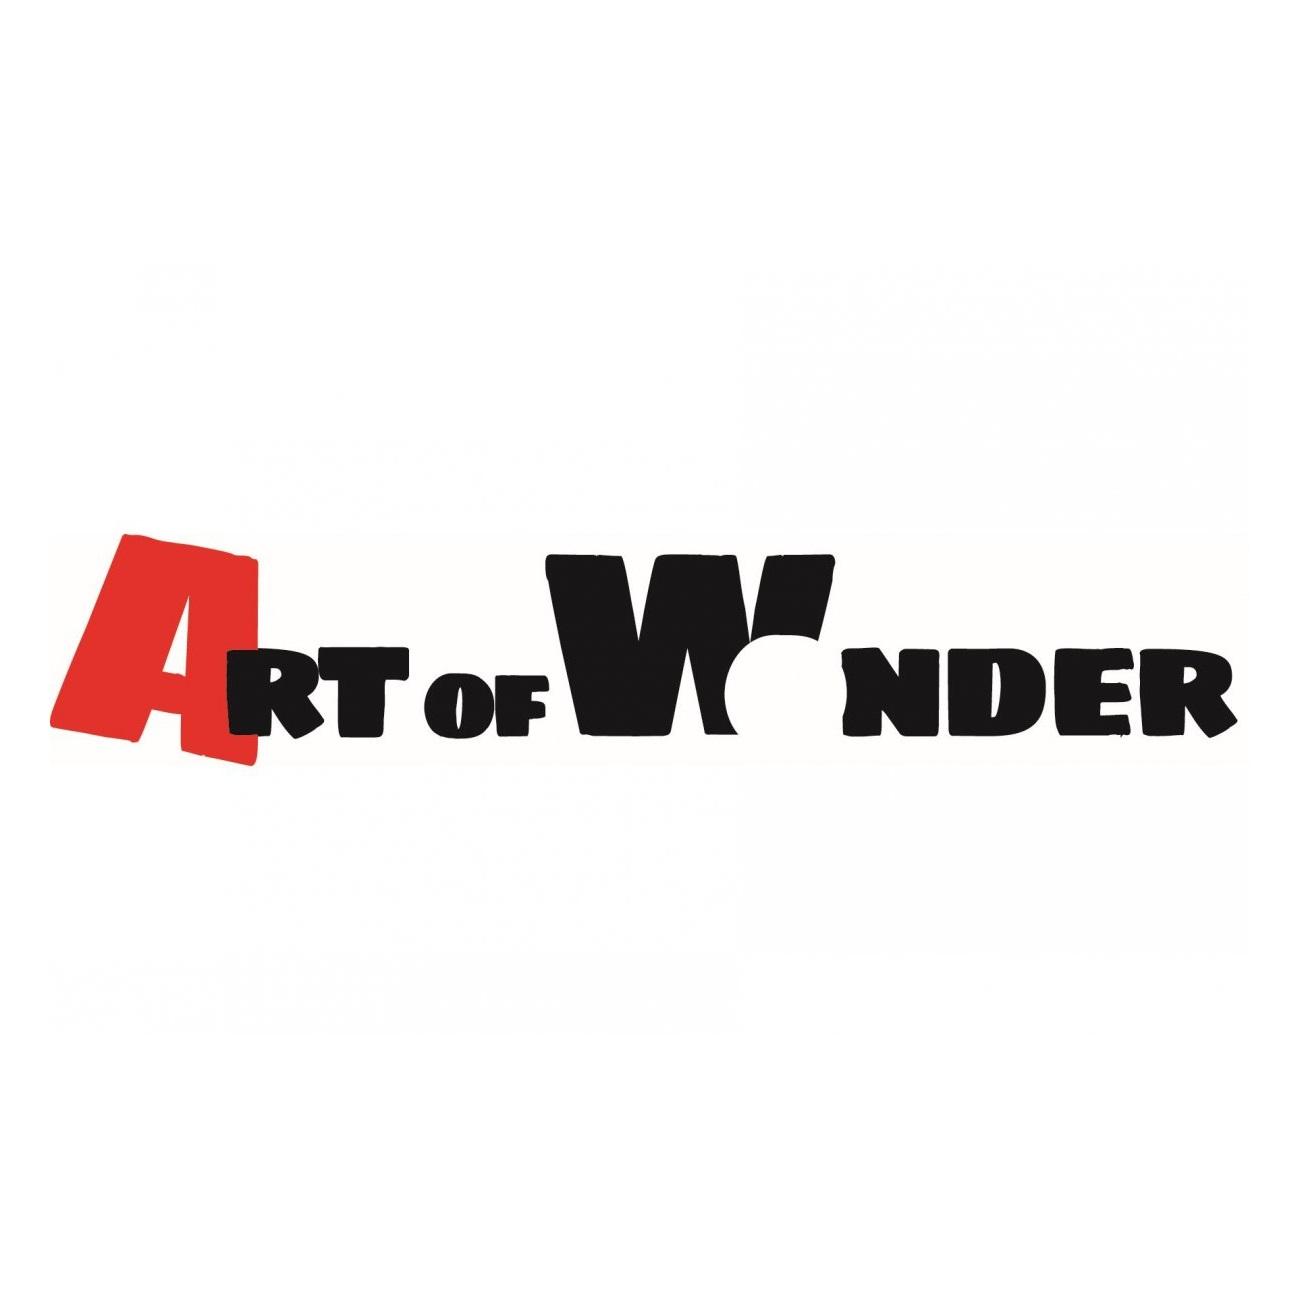 Art of Wonder festival